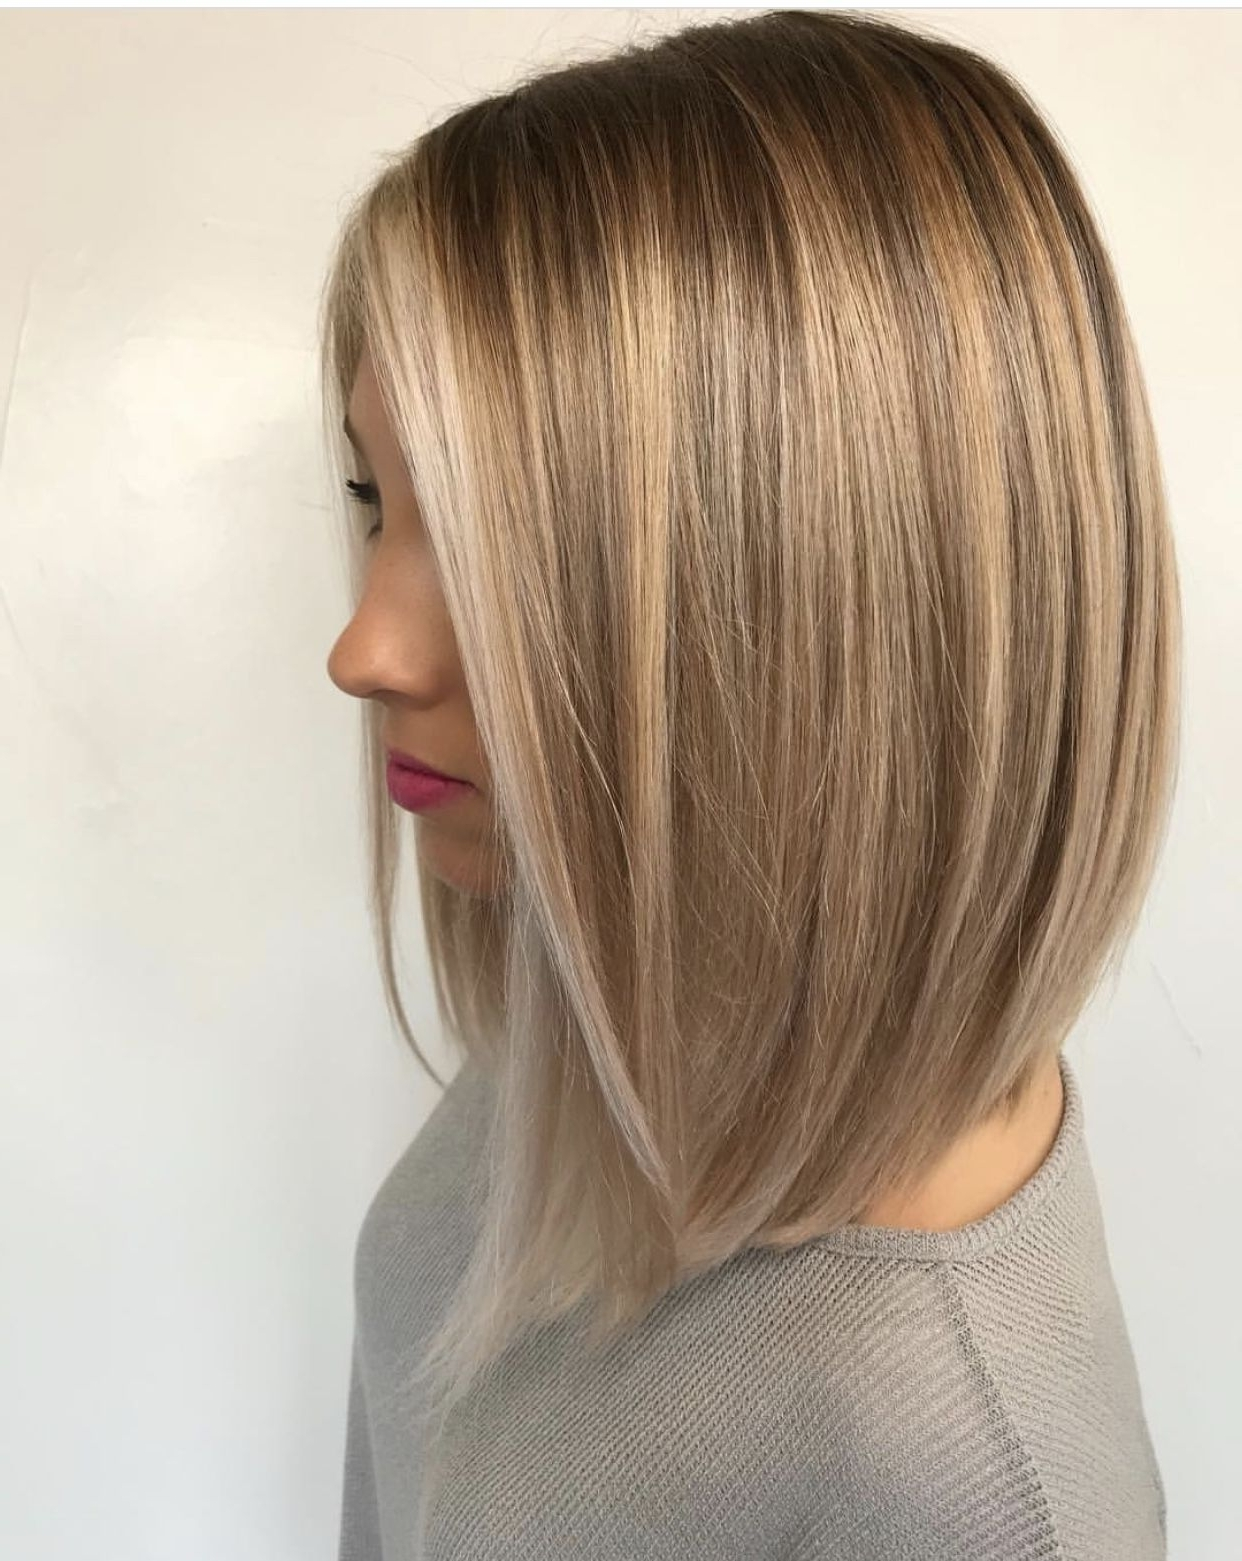 Current Cream Colored Bob Blonde Hairstyles Intended For Long Bob Haircut, Blonde Hair Color, Dirty Blonde Color, Stylish (View 9 of 20)